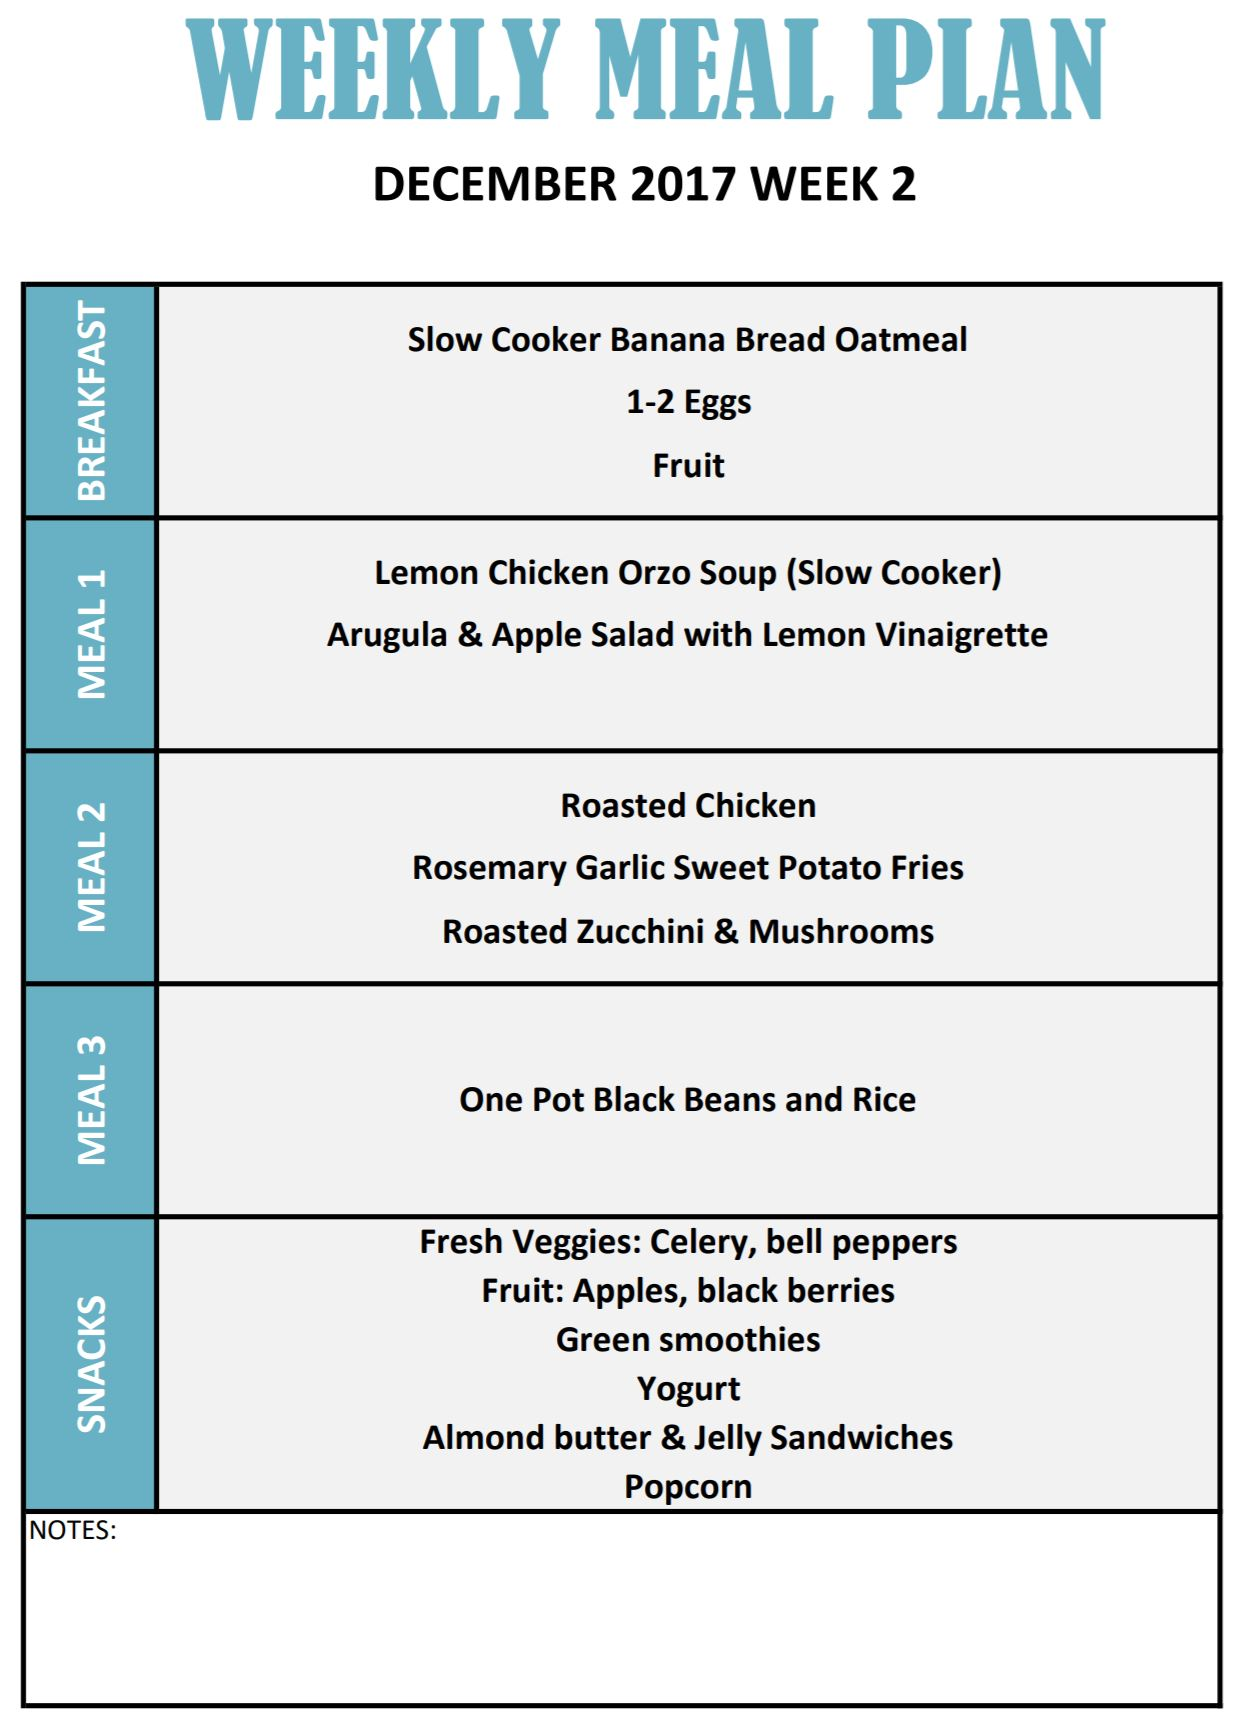 meal menus for the week